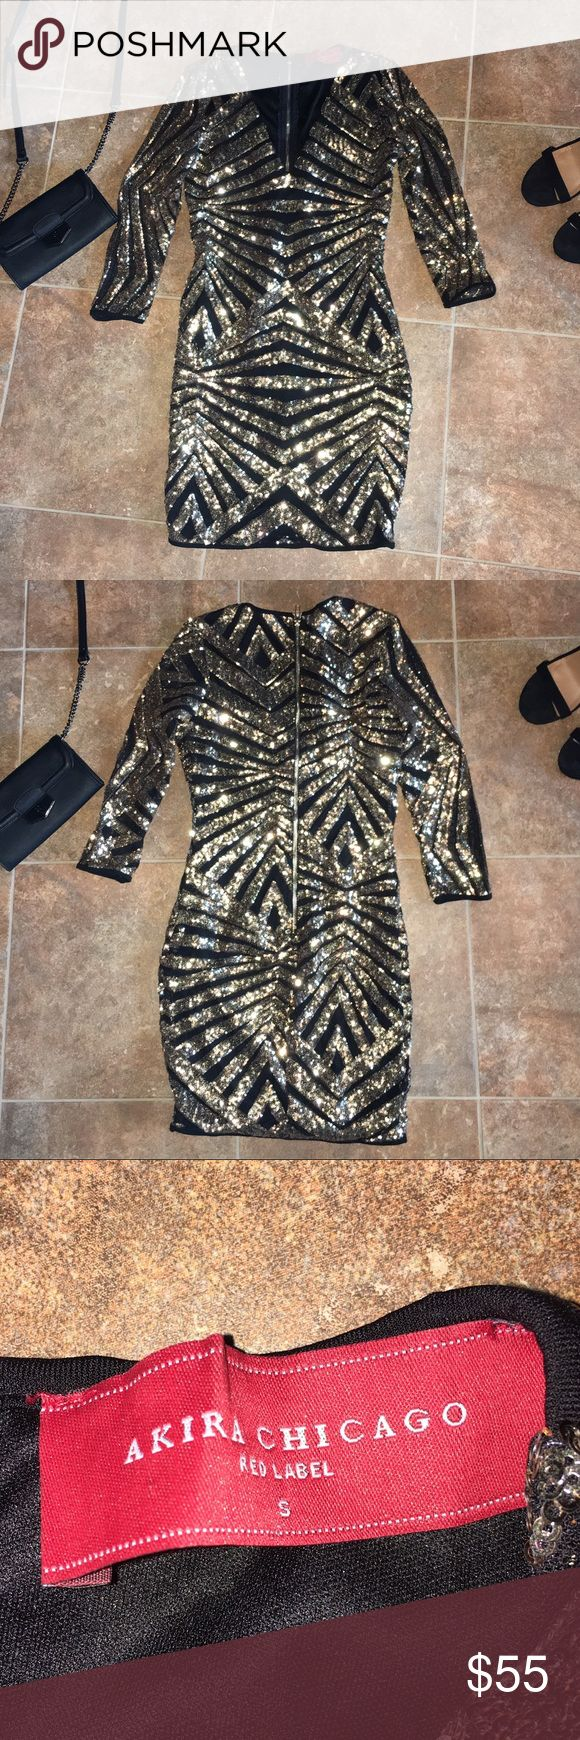 Akira Black & Gold Sparkle Pattern Night Out Dress Worn once for a short amount of time! Akira Chicago black and gold sparkle pattern tight v-neck night out dress. Looks absolutely gorgeous on without being too promiscuous. Size Small! In excellent condition! AKIRA Dresses Mini